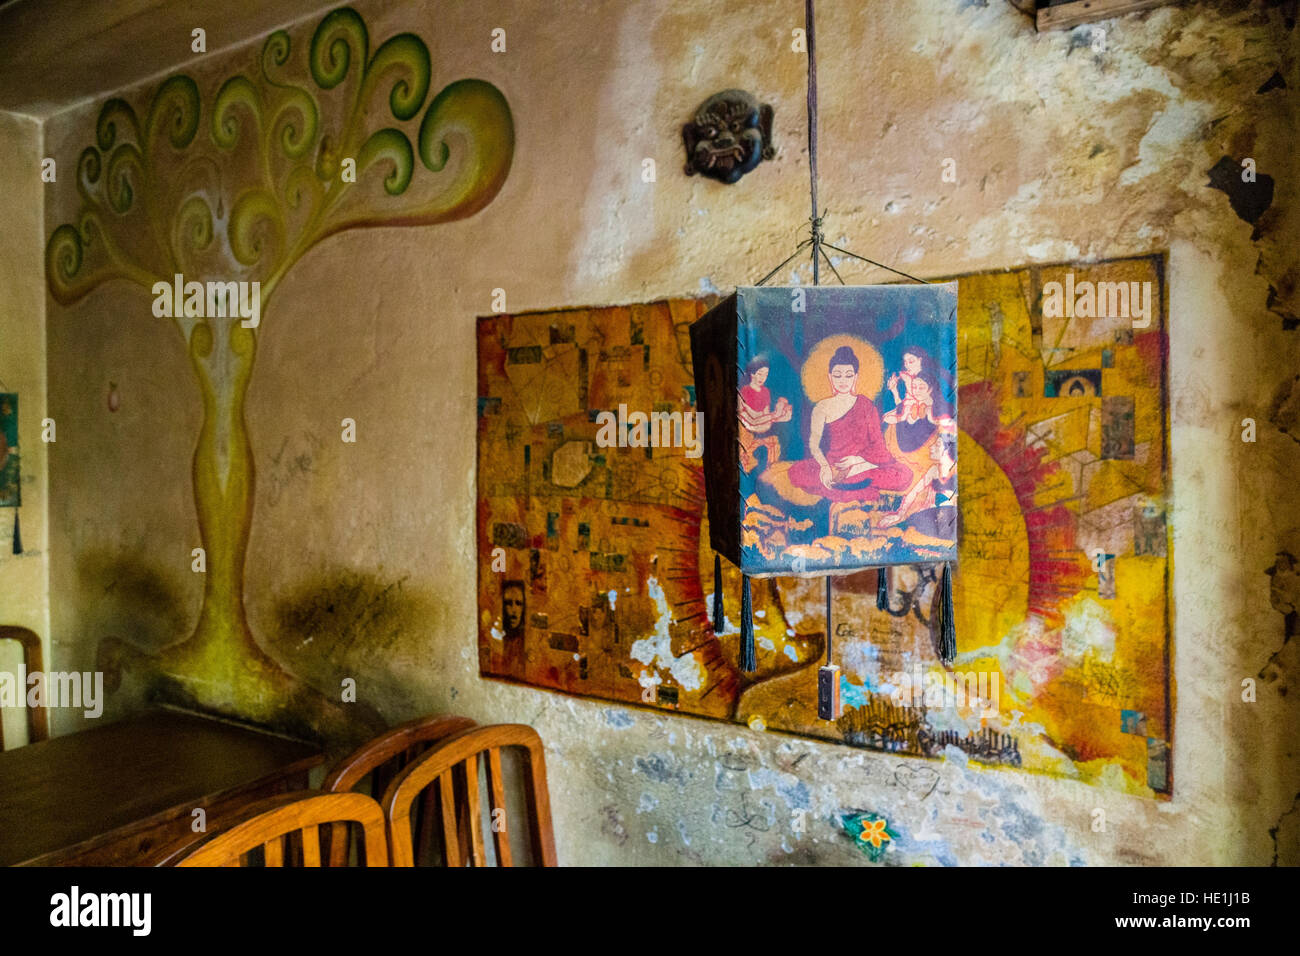 Famous cafe painting - Interior Design And Wall Paintings Of The Famous Cafe And Bakery Snowman At Freak Street